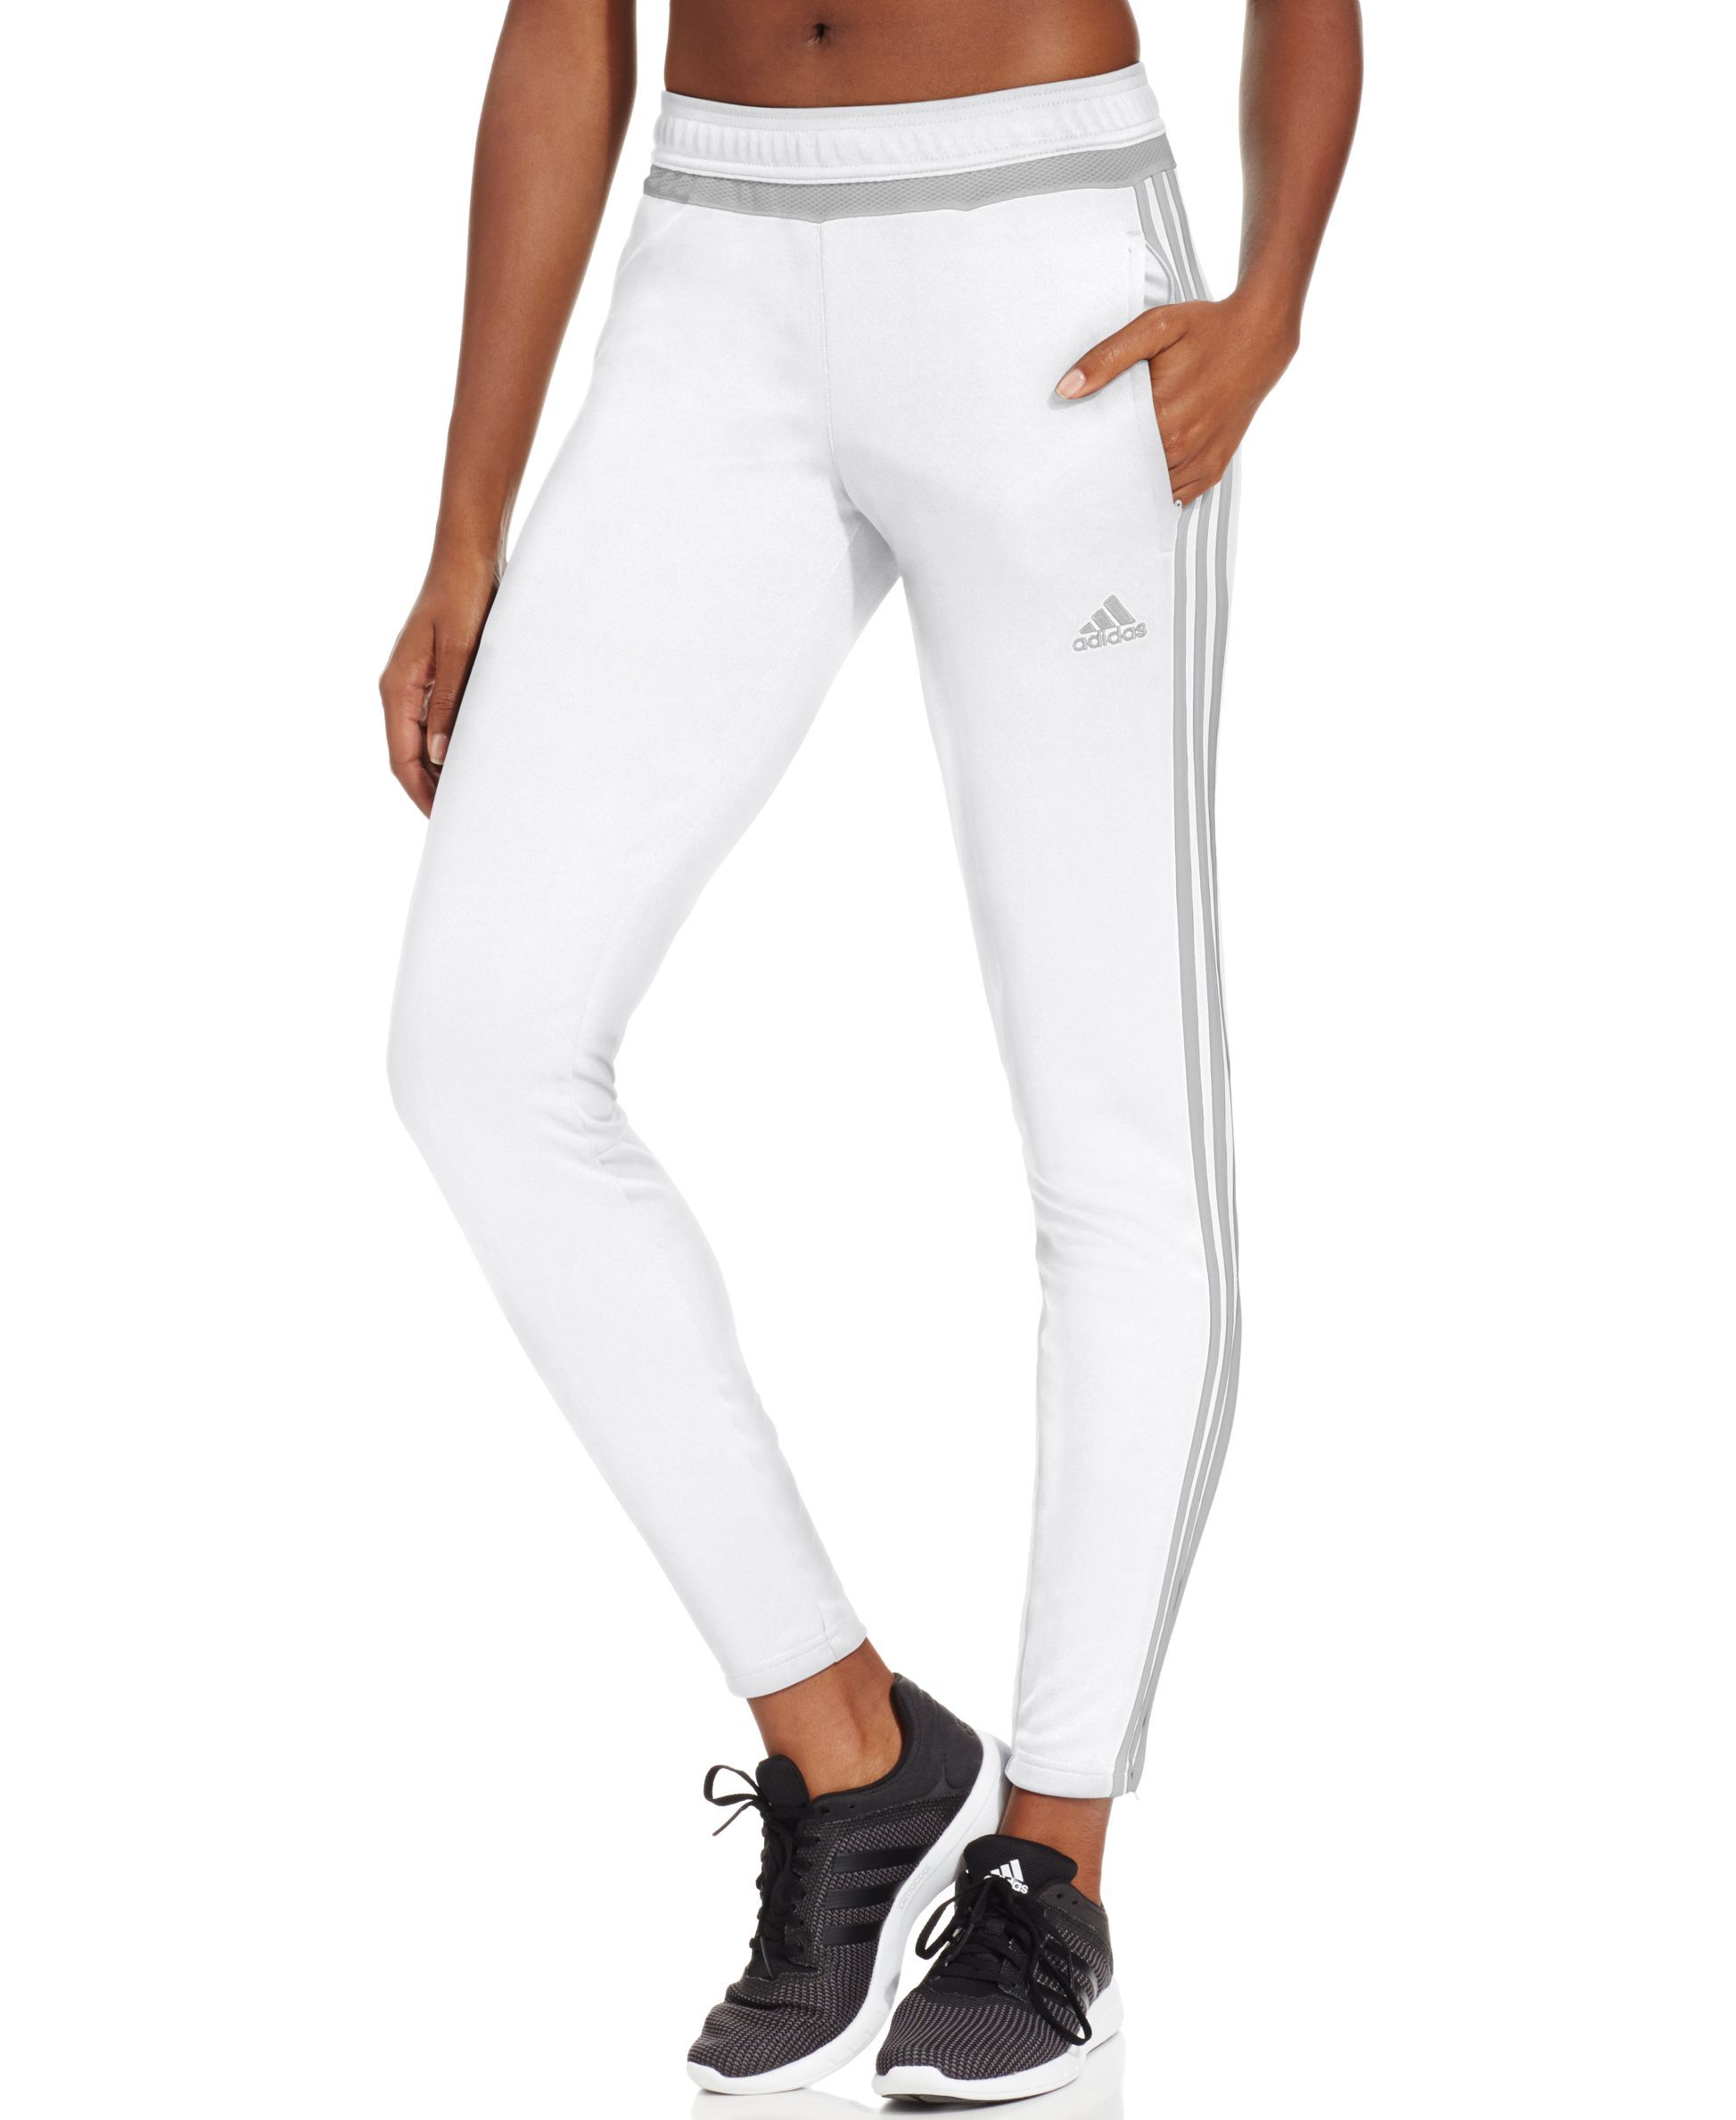 best service 18f18 75ab0 The slim, tapered fit of the Adidas Tiro 15 Pant lets you ...